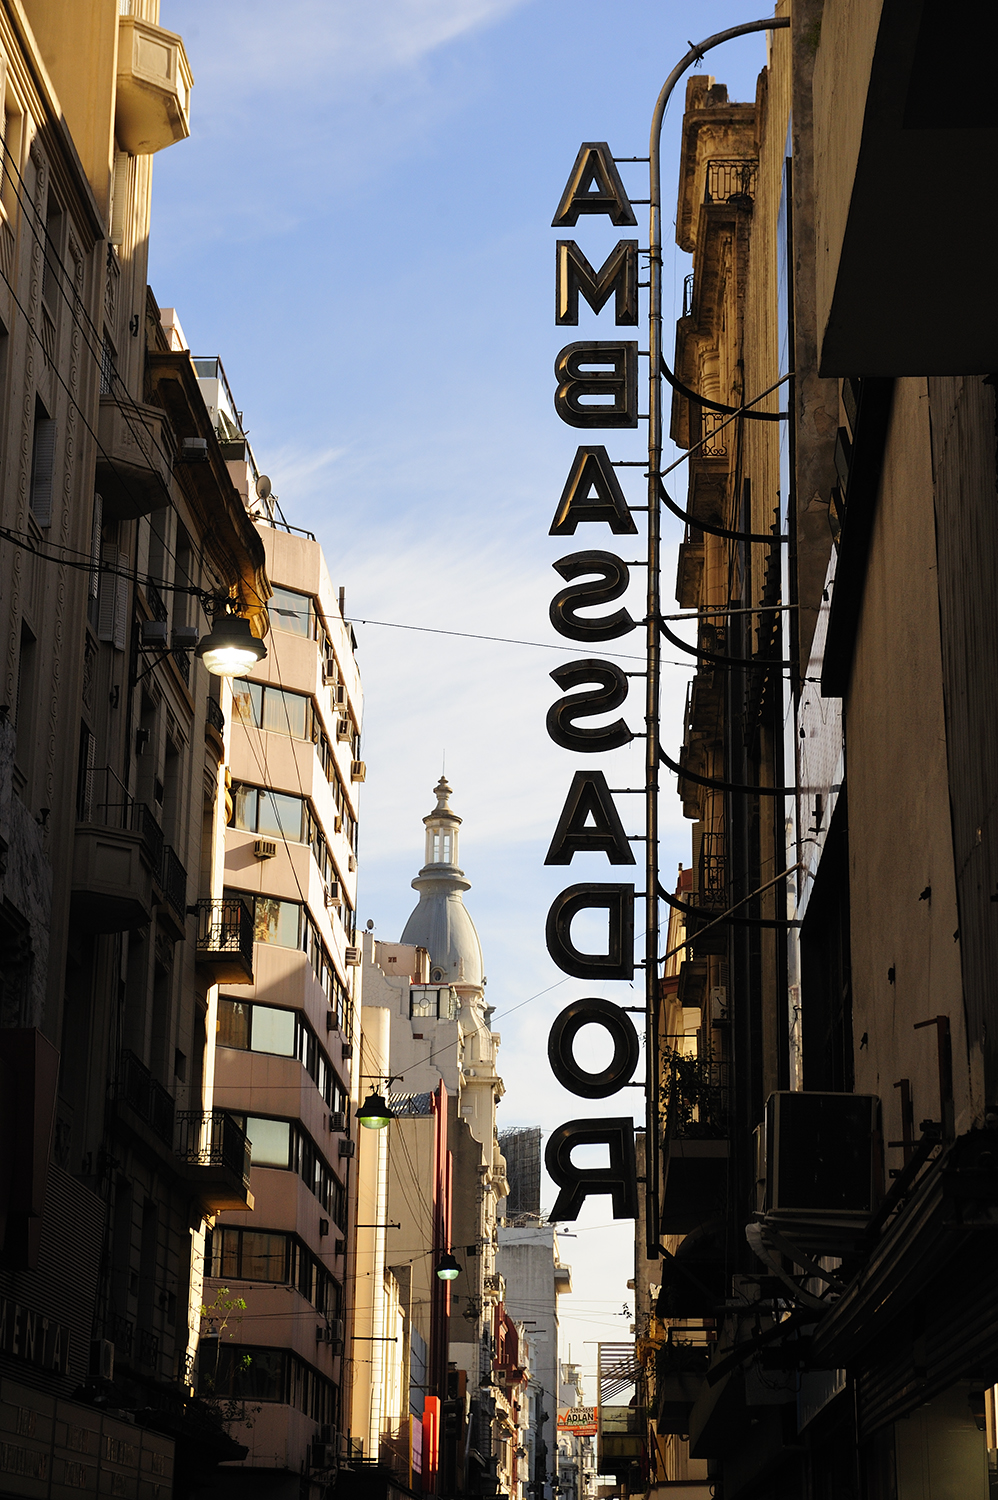 Buenos Aires_06-2014_0035.jpg